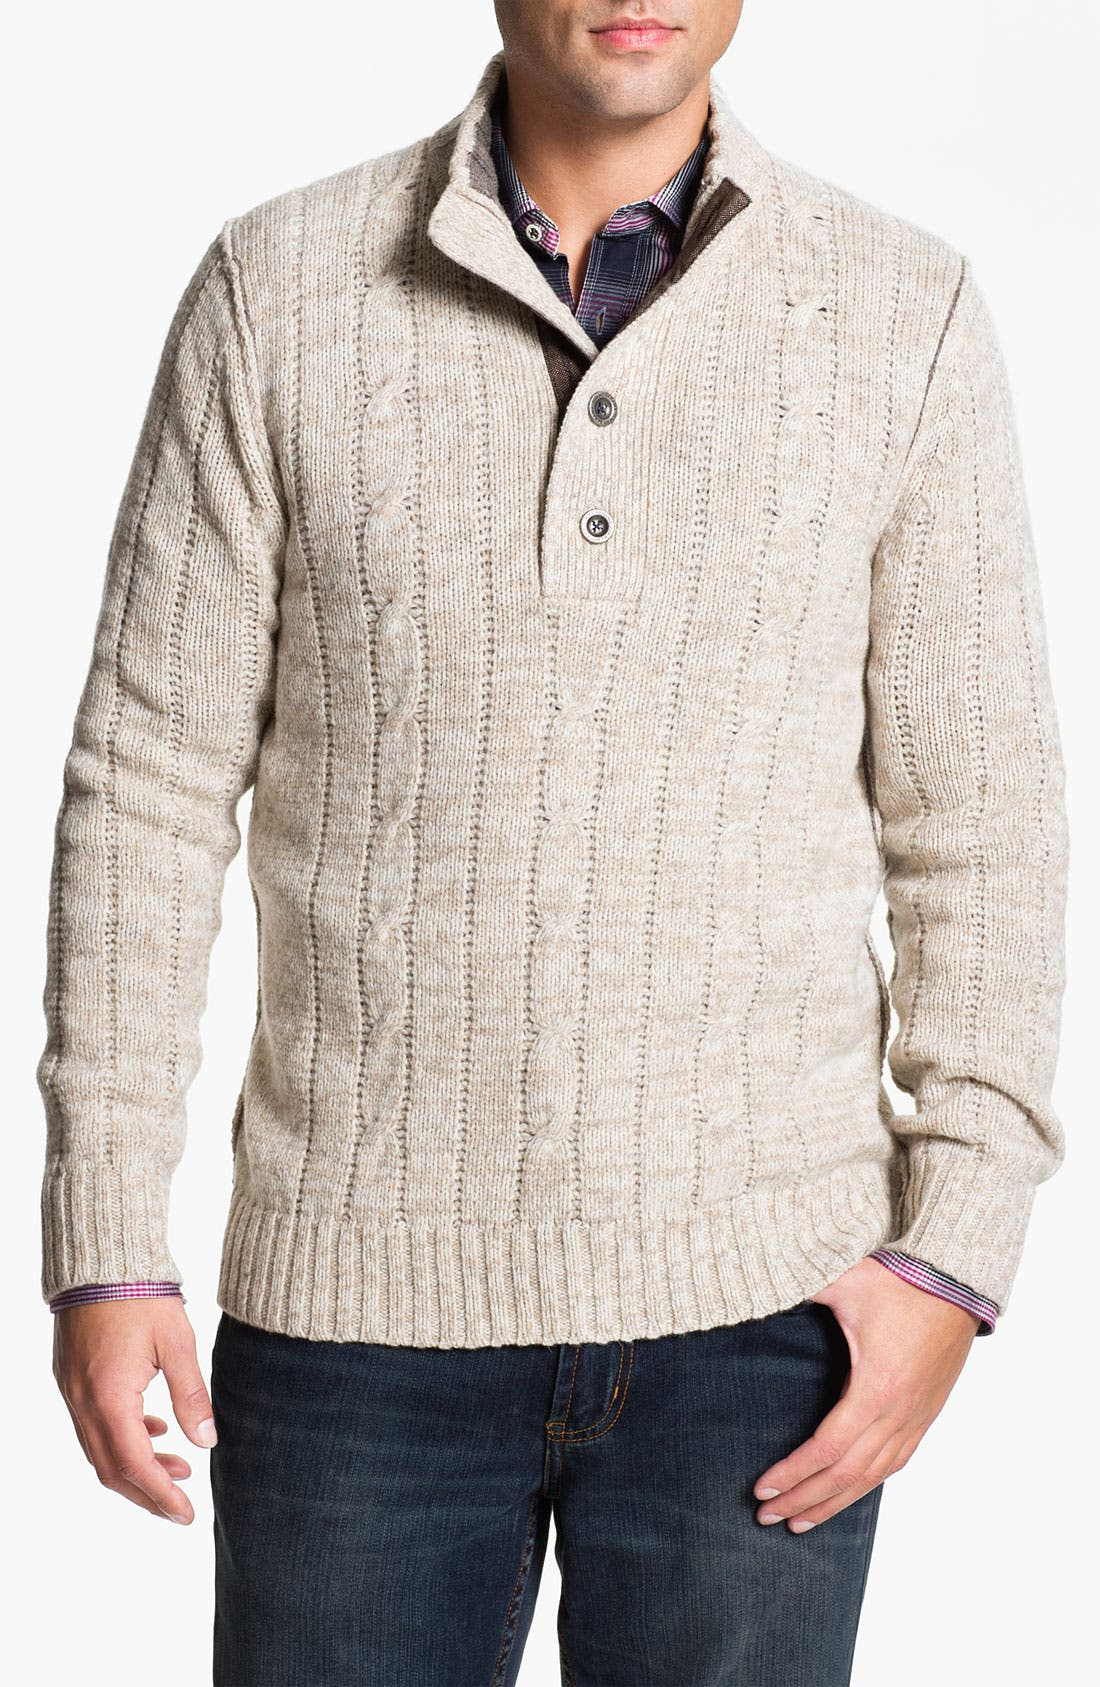 Alternate Image 1 Selected - Tommy Bahama 'Outer Banks' Mock Neck Cable Knit Sweater